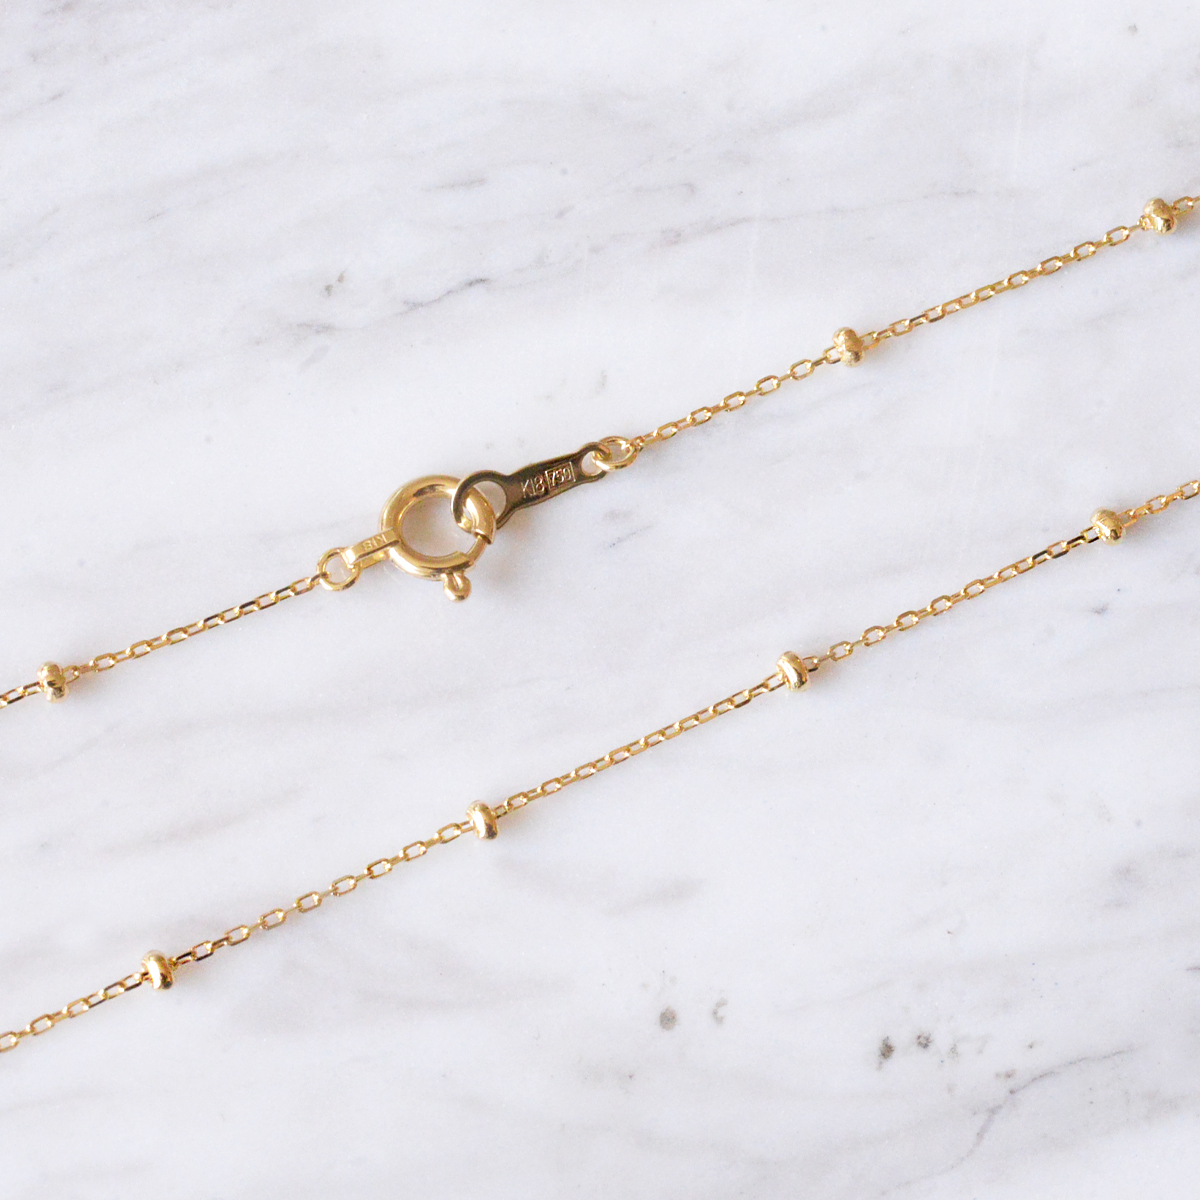 k18ネックレス K18 イエローゴールド スタッド アズキチェーン 幅1.7mm チェーン 70cm/ プレゼント ギフト gold necklace ach1663c70